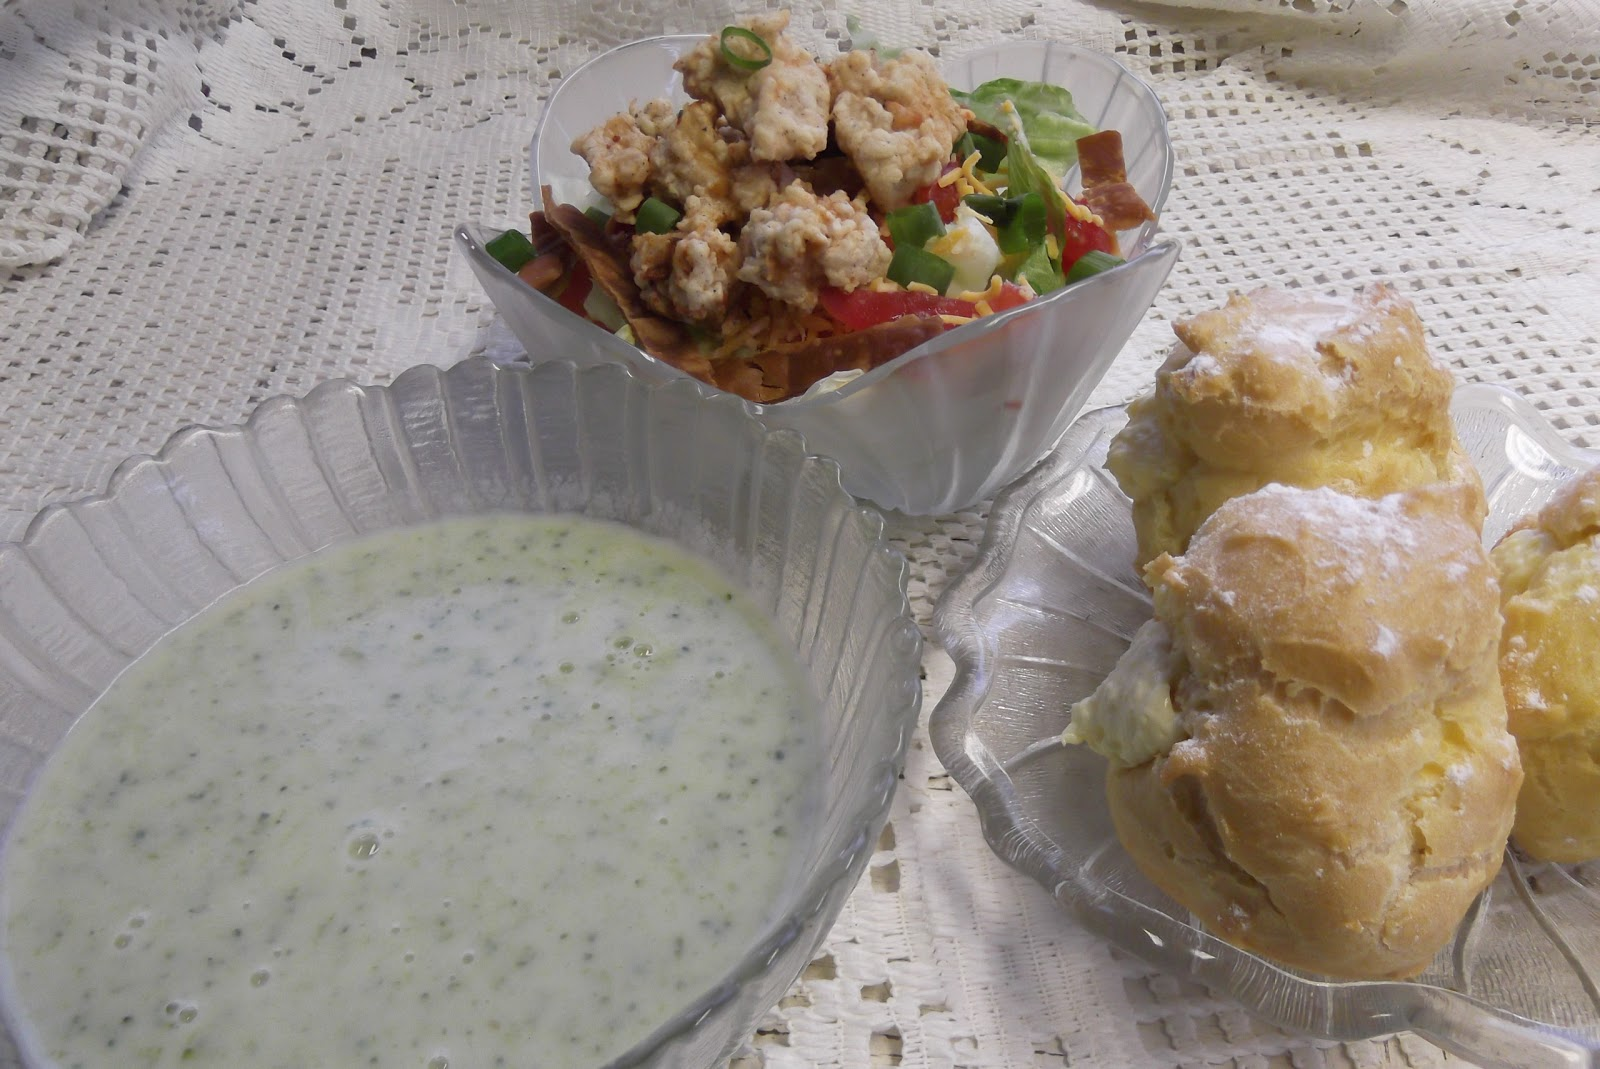 ... Blog: Fried Chicken Salad, Cream of Broccoli Soup and Cream Puffs